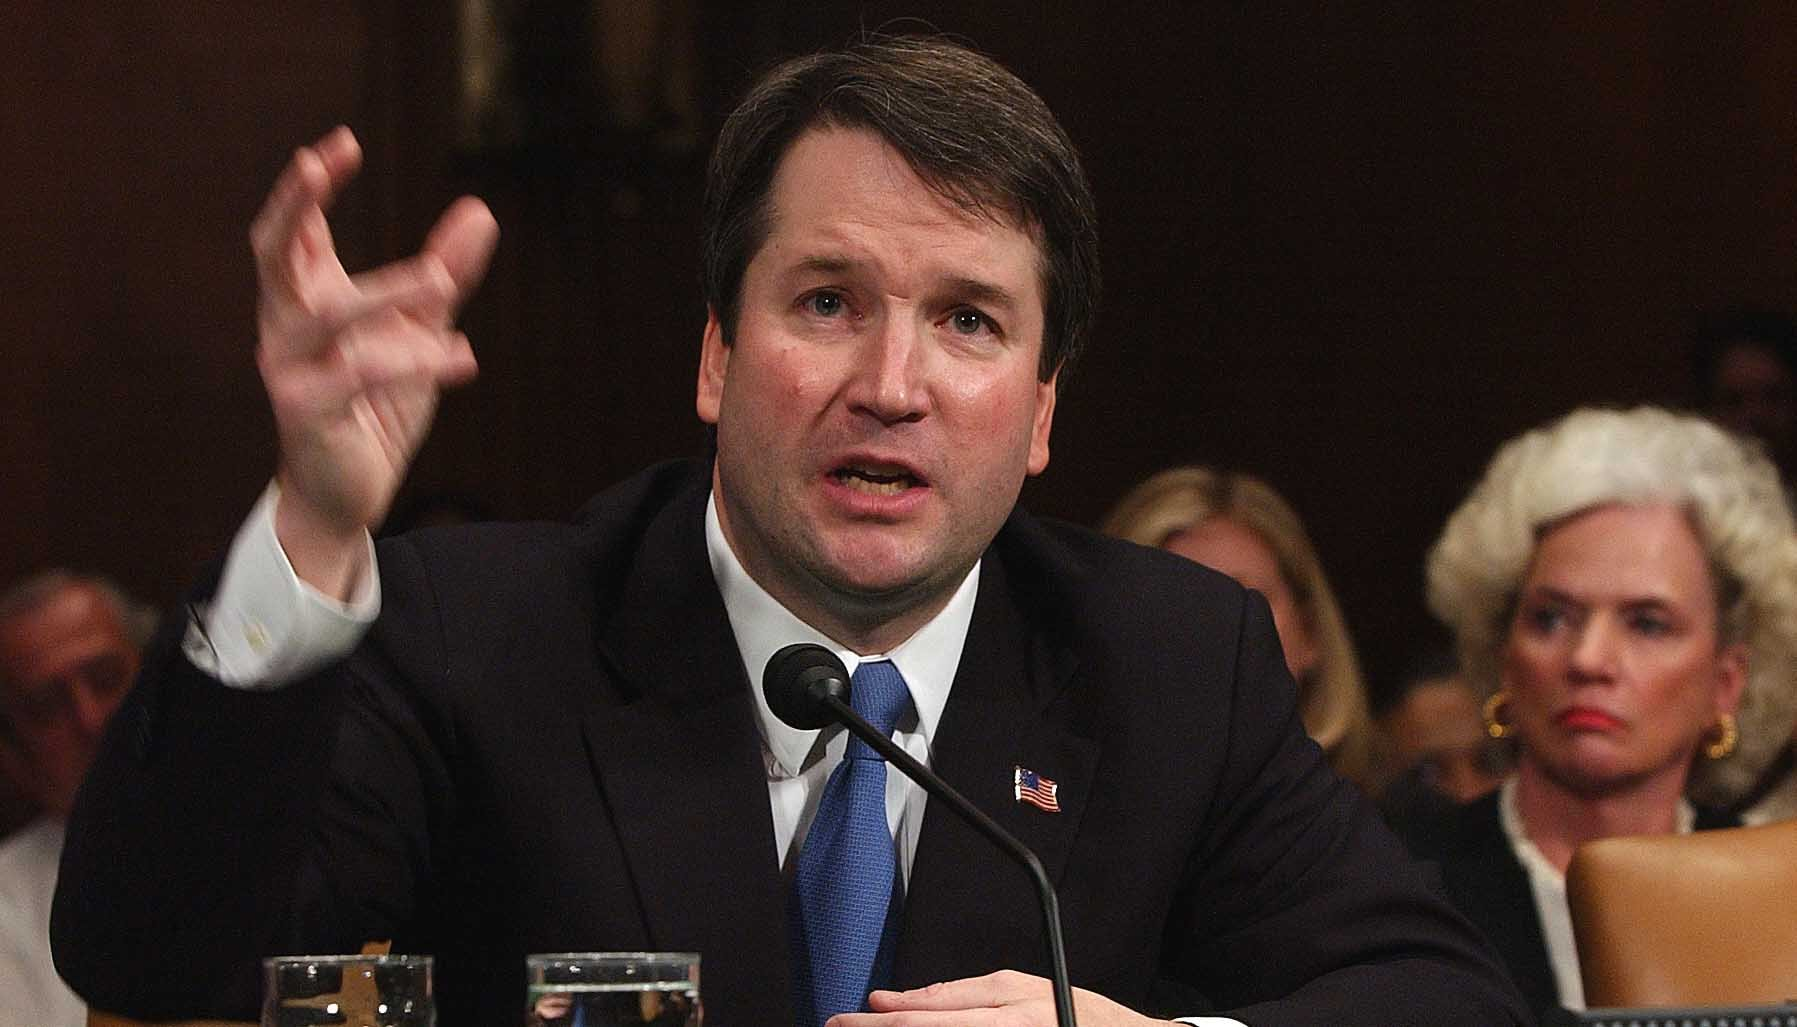 Who is Brett Kavanaugh, Trump's Supreme Court nominee?